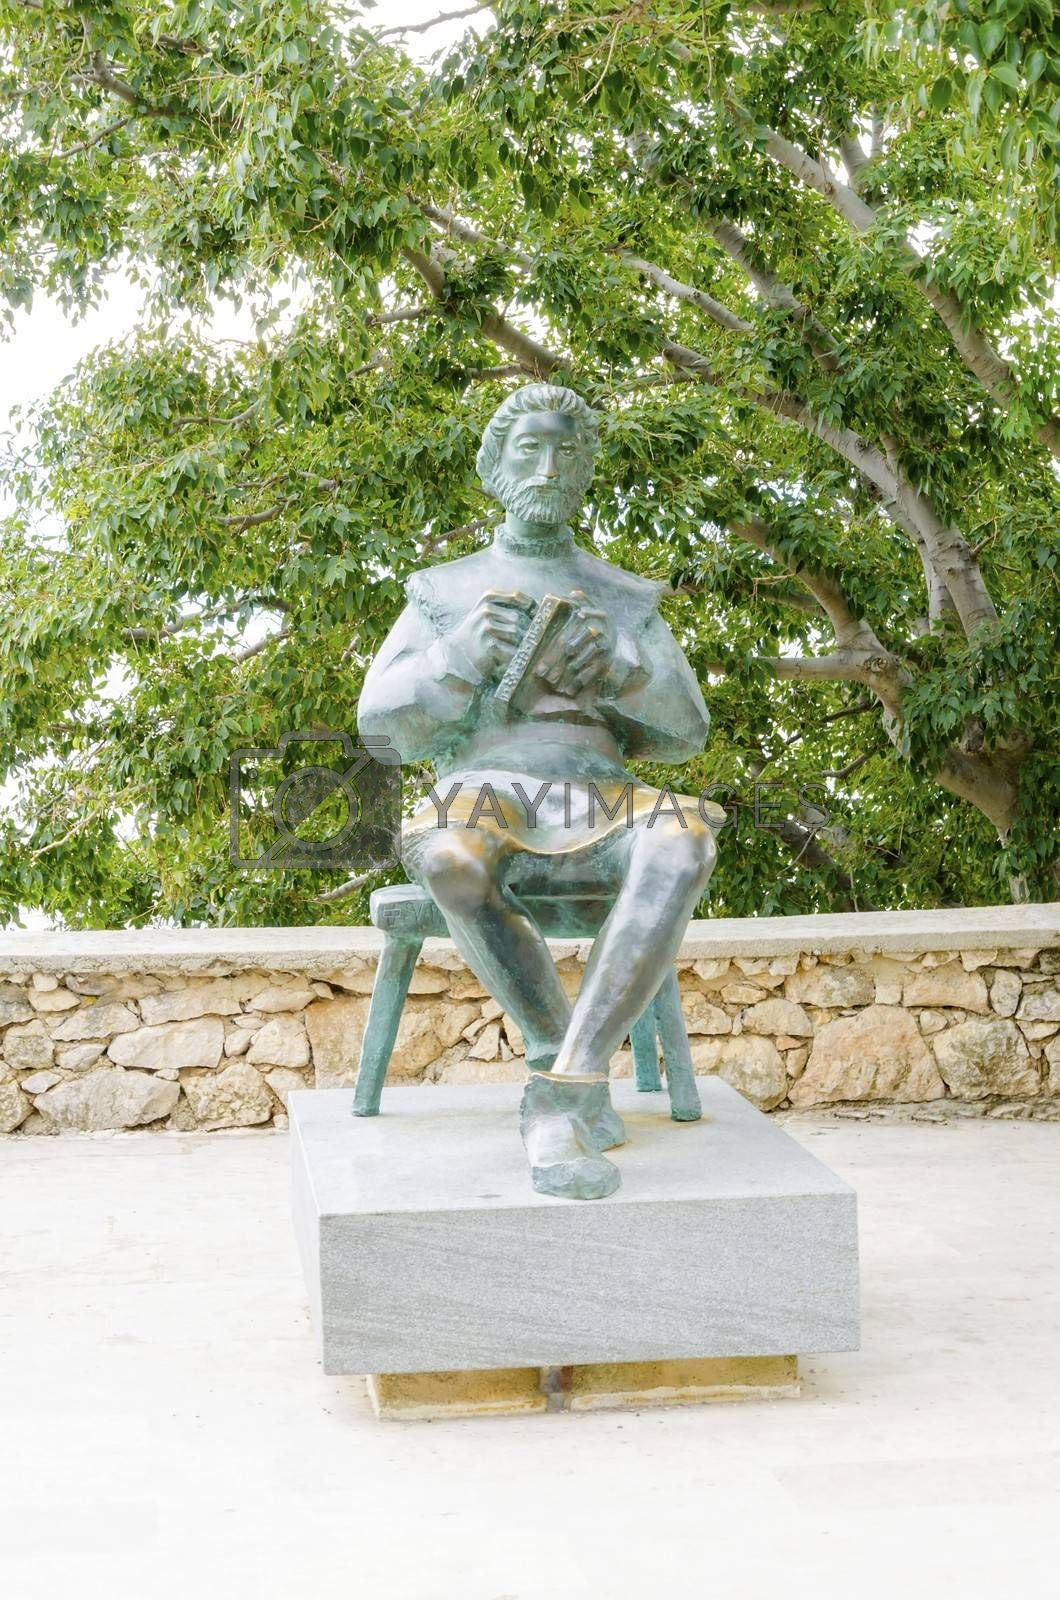 Bronze statue of Blaz Baromic holding a book in Vrbnik town, Krk, Croatia. One of the first printer, calligraphers who founded senj using the glagolitic alphabet in print.